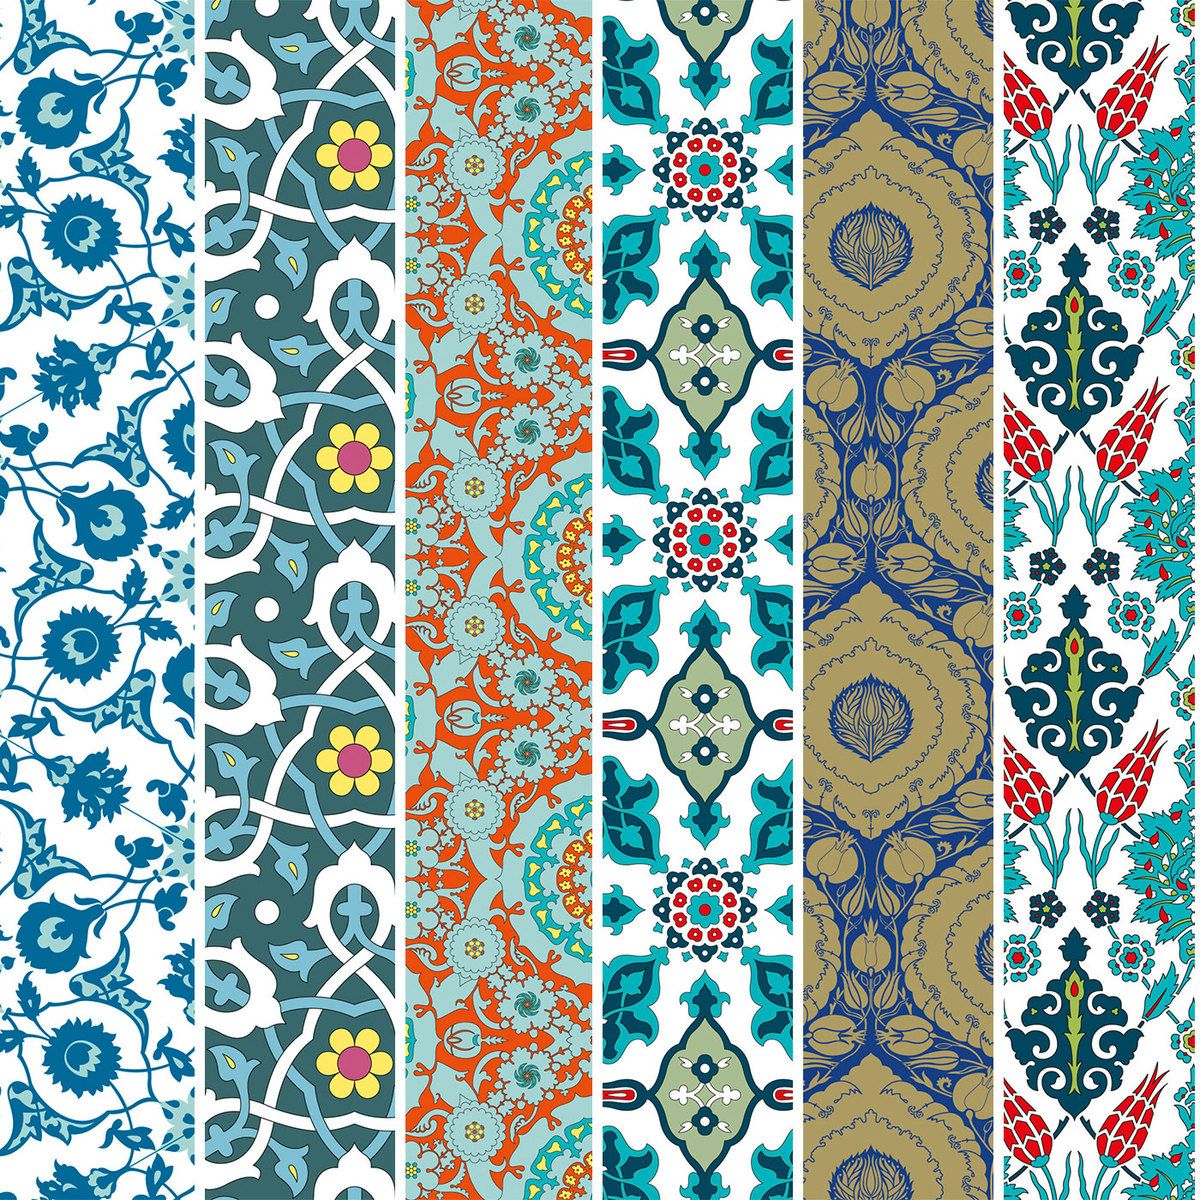 Tissue Paper Designs Turkish Designs Wrapping Paper This Would Be Pretty In A